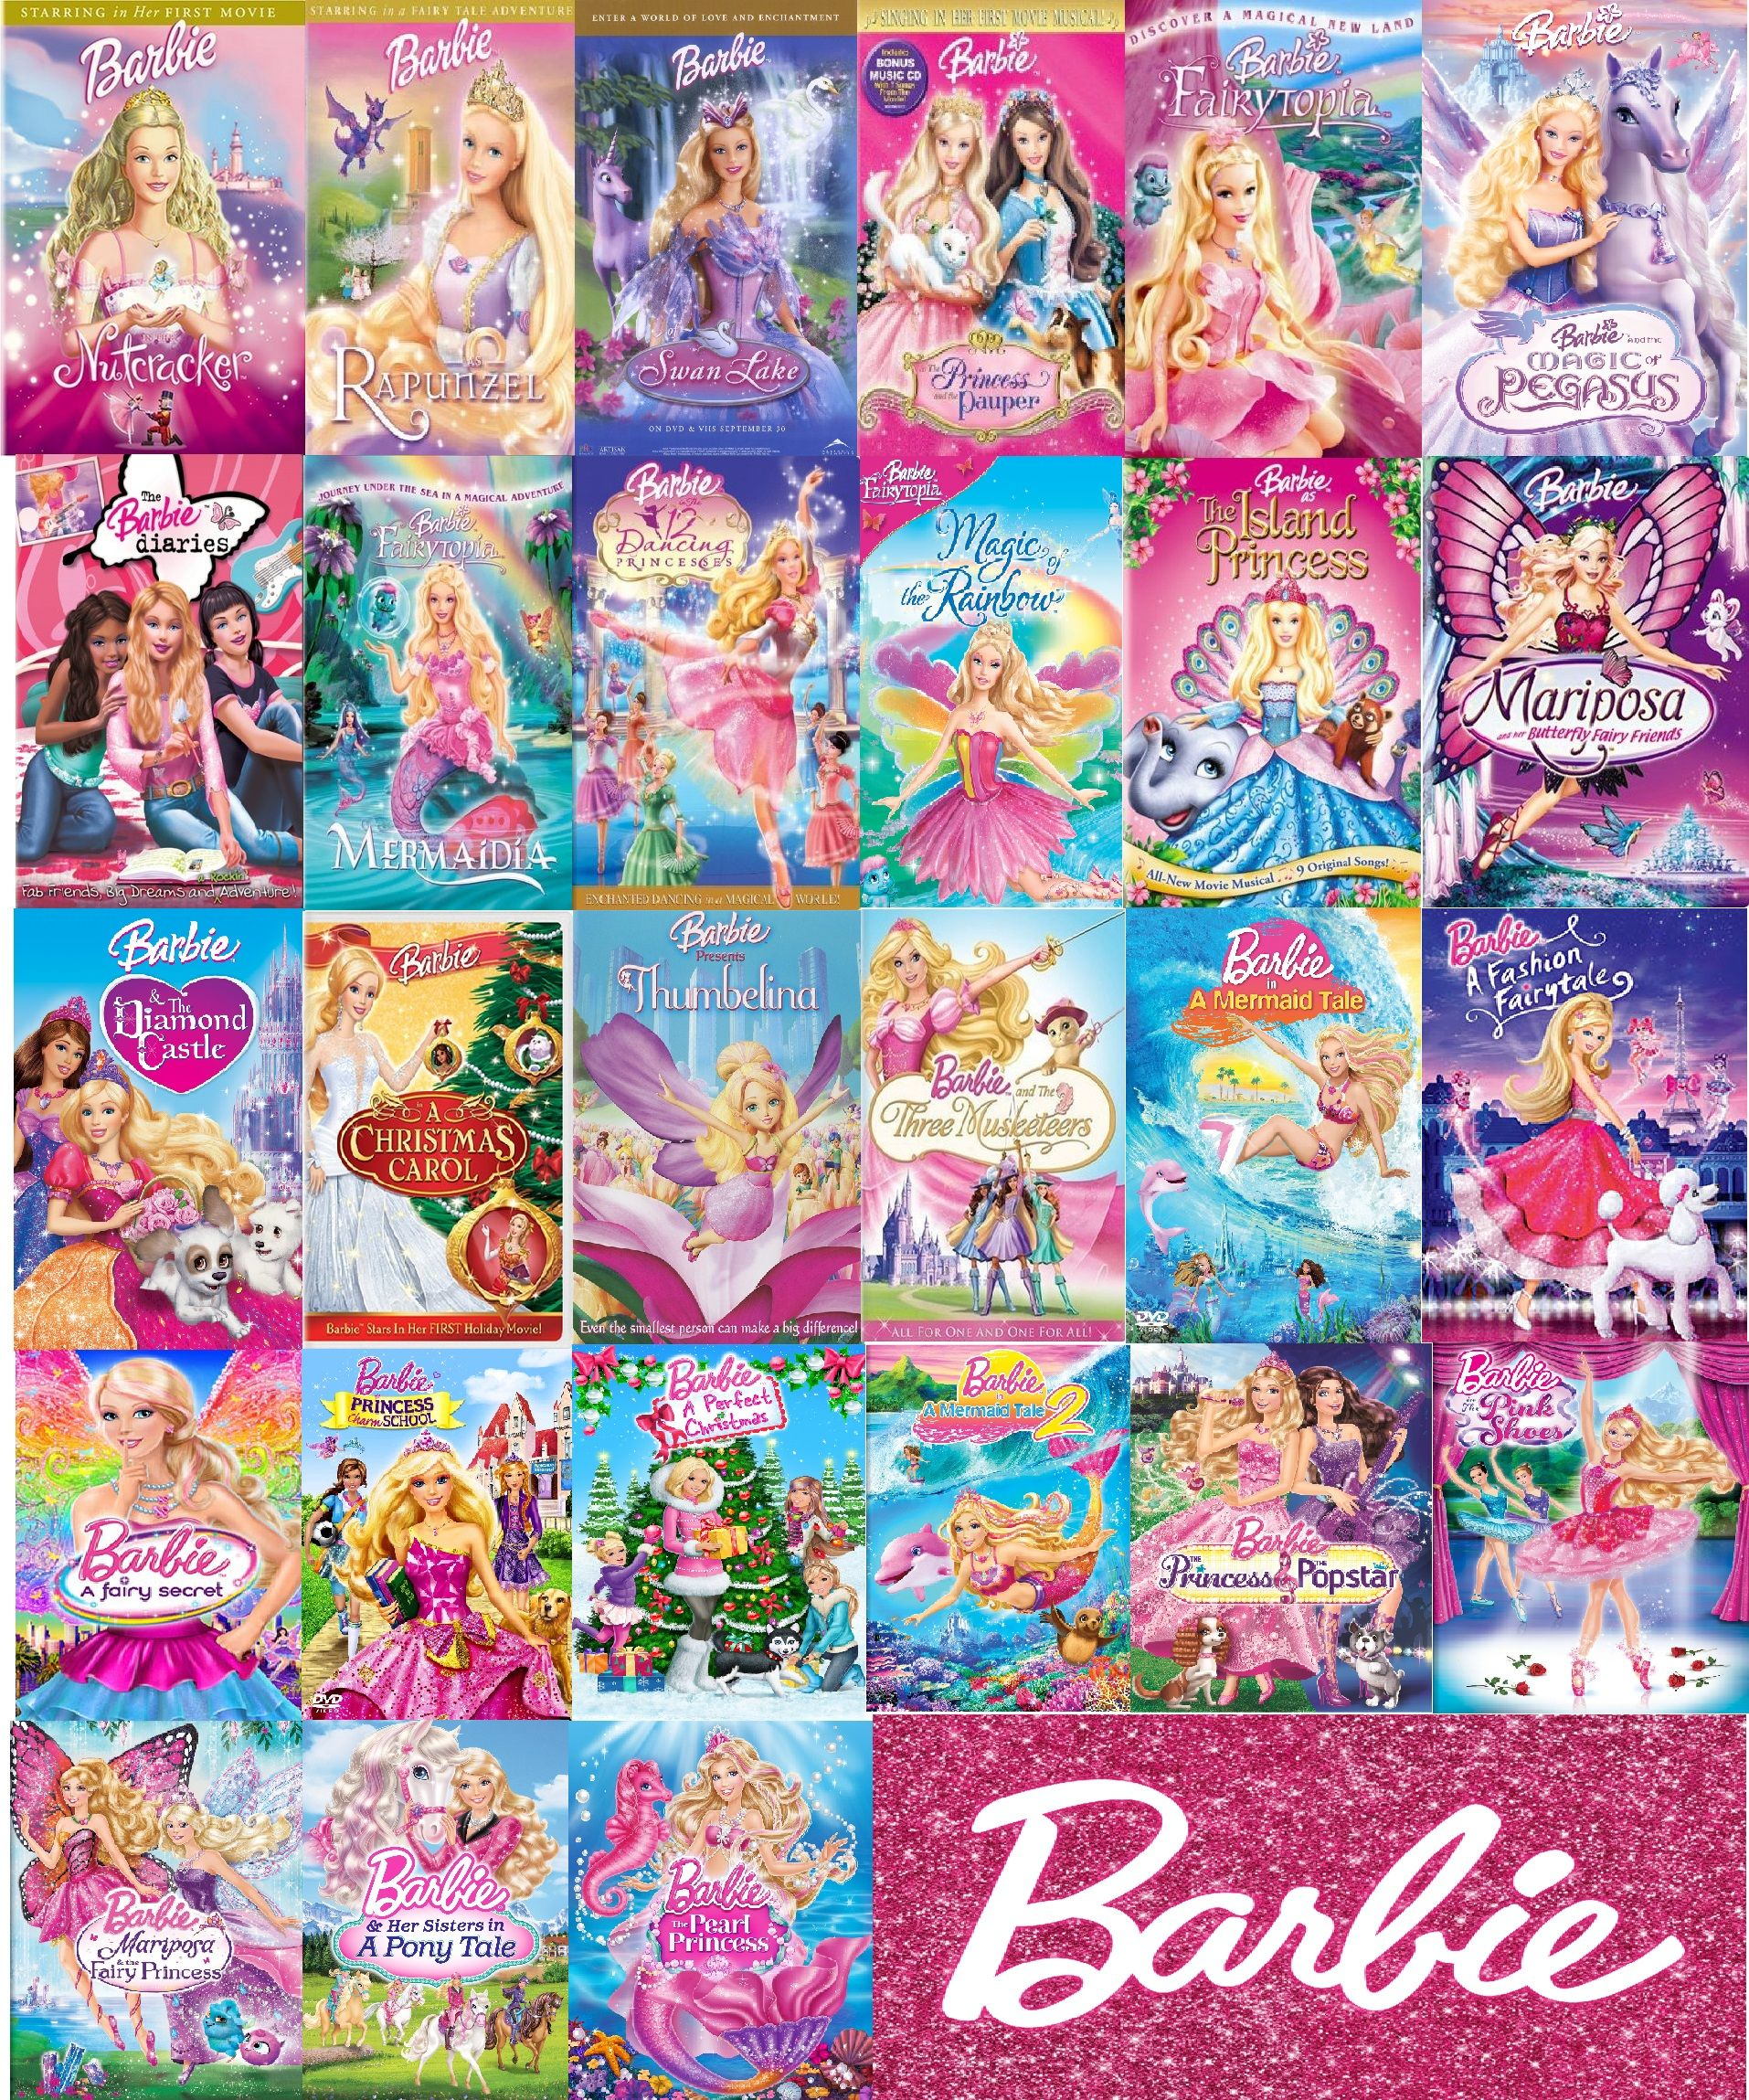 List of every single Barbie movie ever made in order. Made